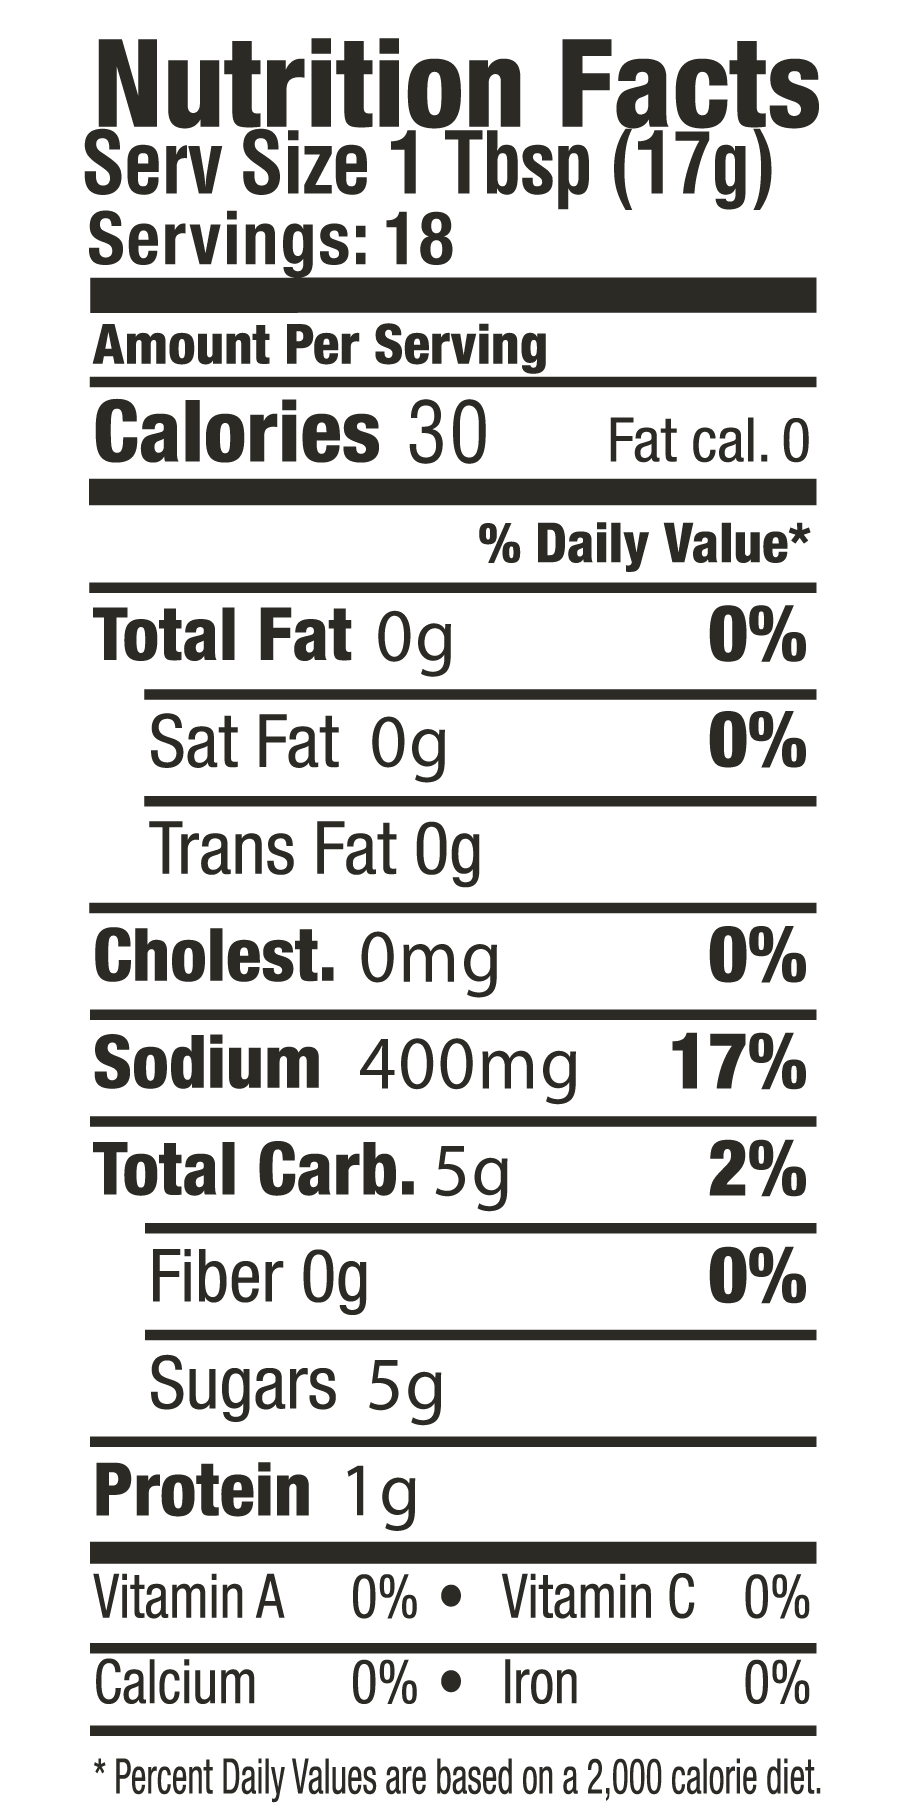 NutritionalFacts_TERIYAKI_2018.png